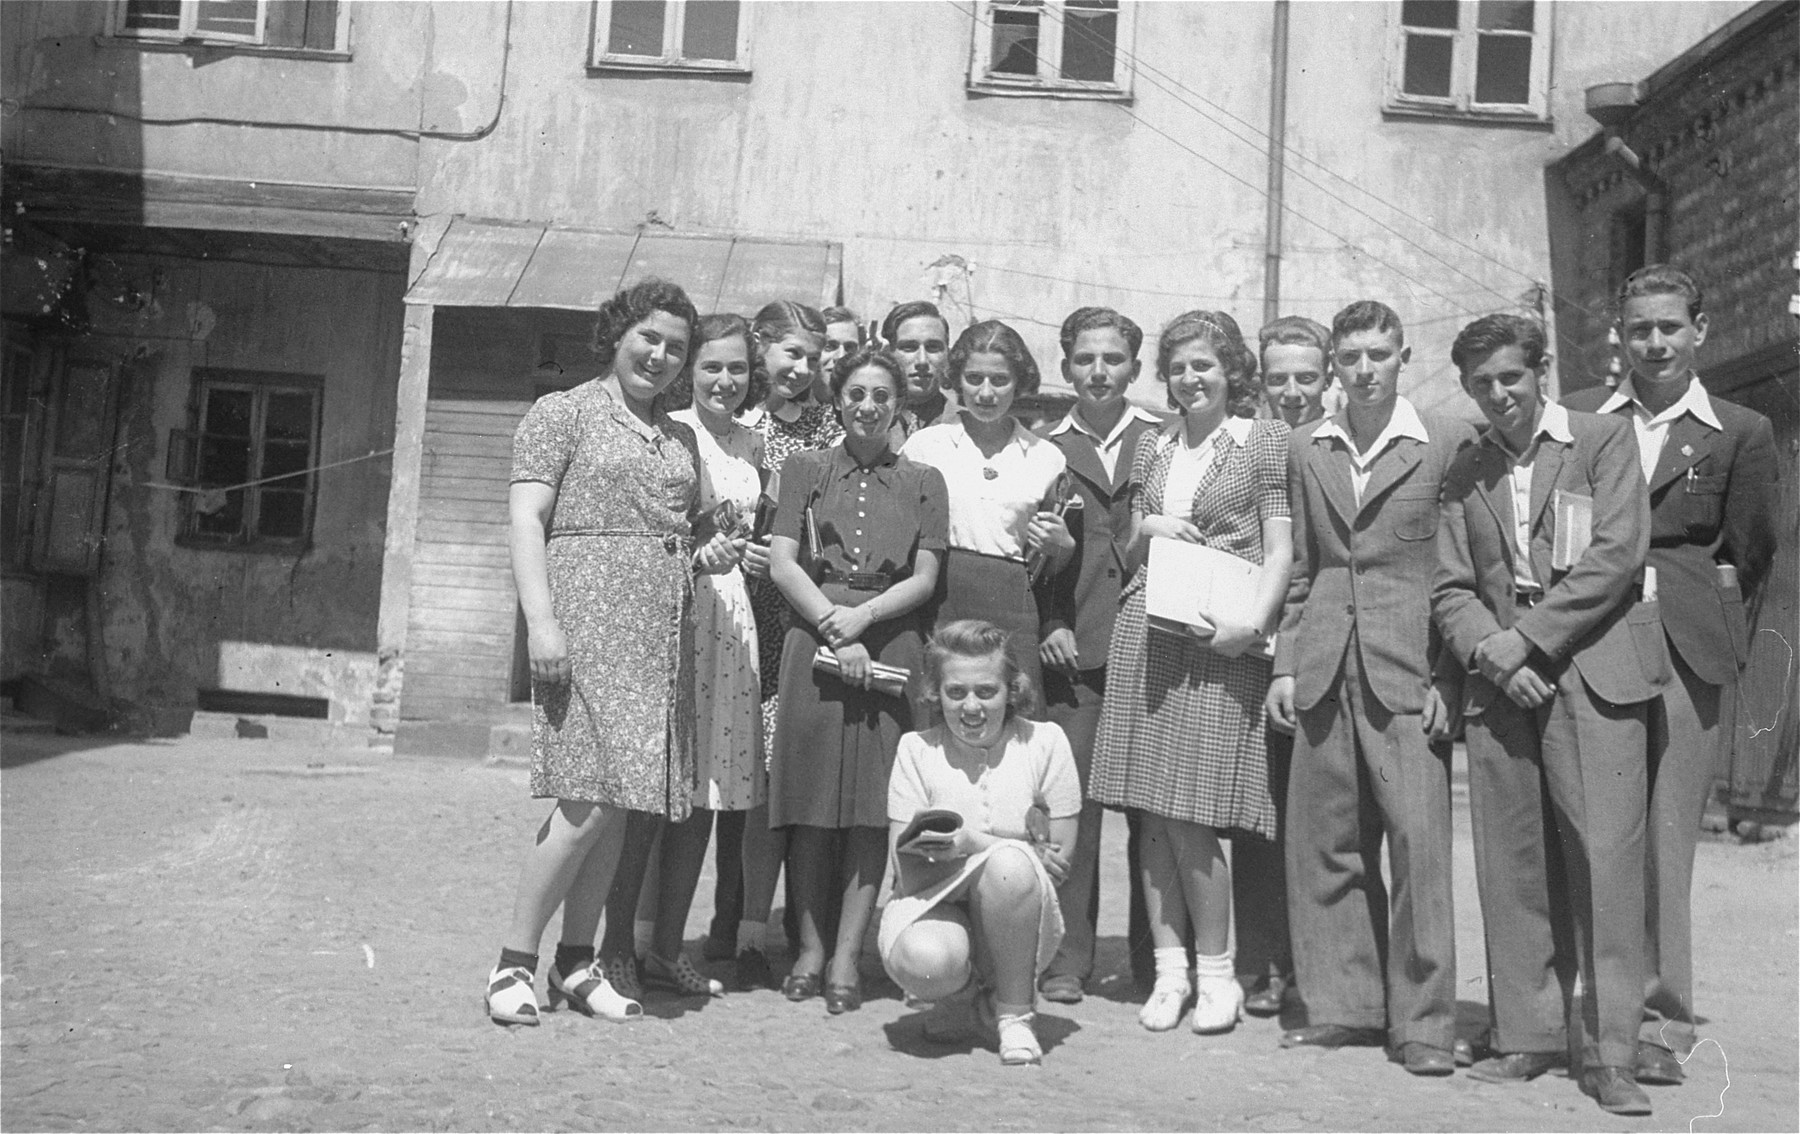 Group portrait of students from the Yiddish-Litvische Gymnasium in Kovno.